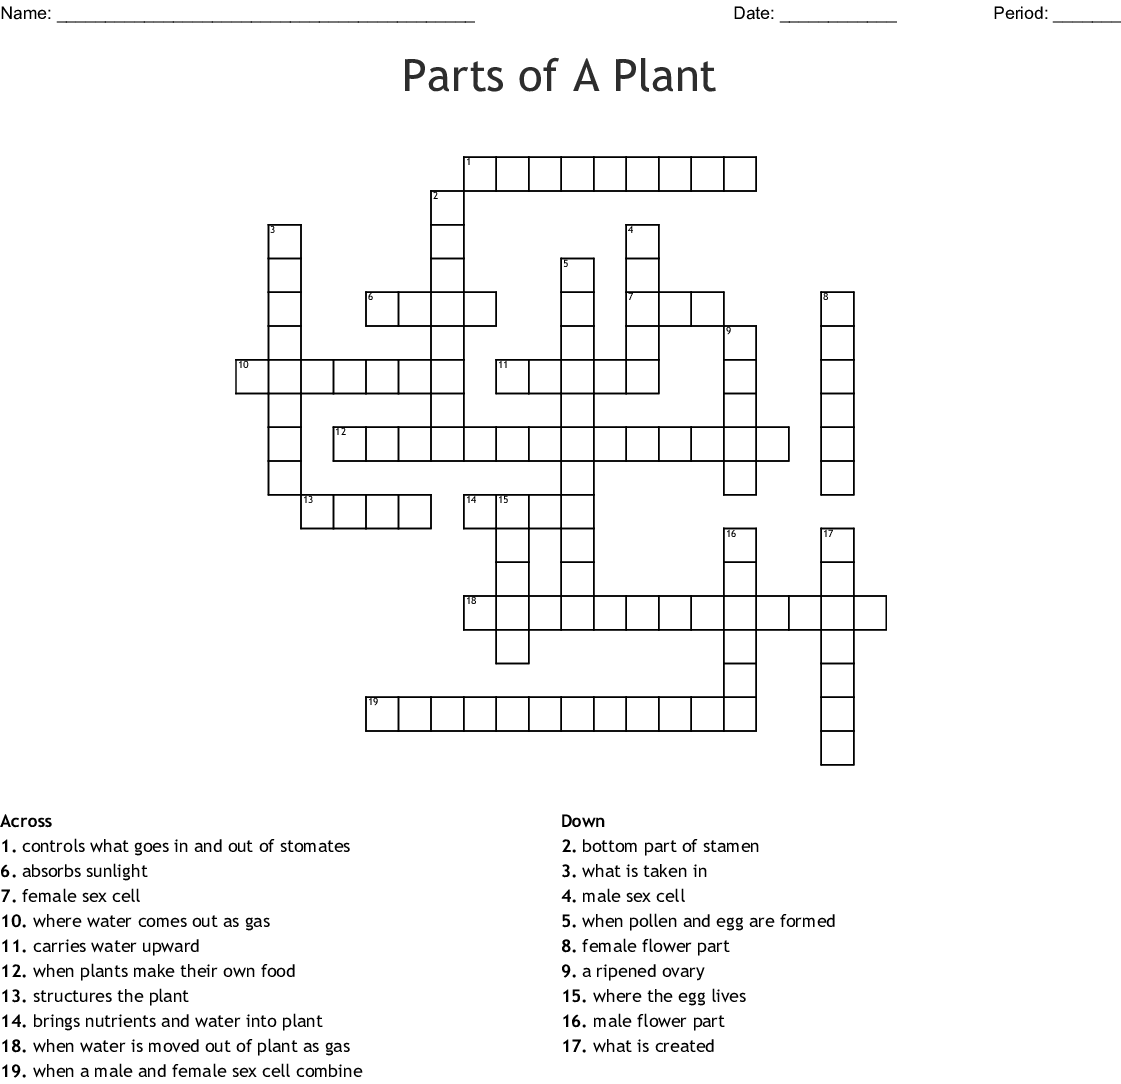 Plant Parts Crossword